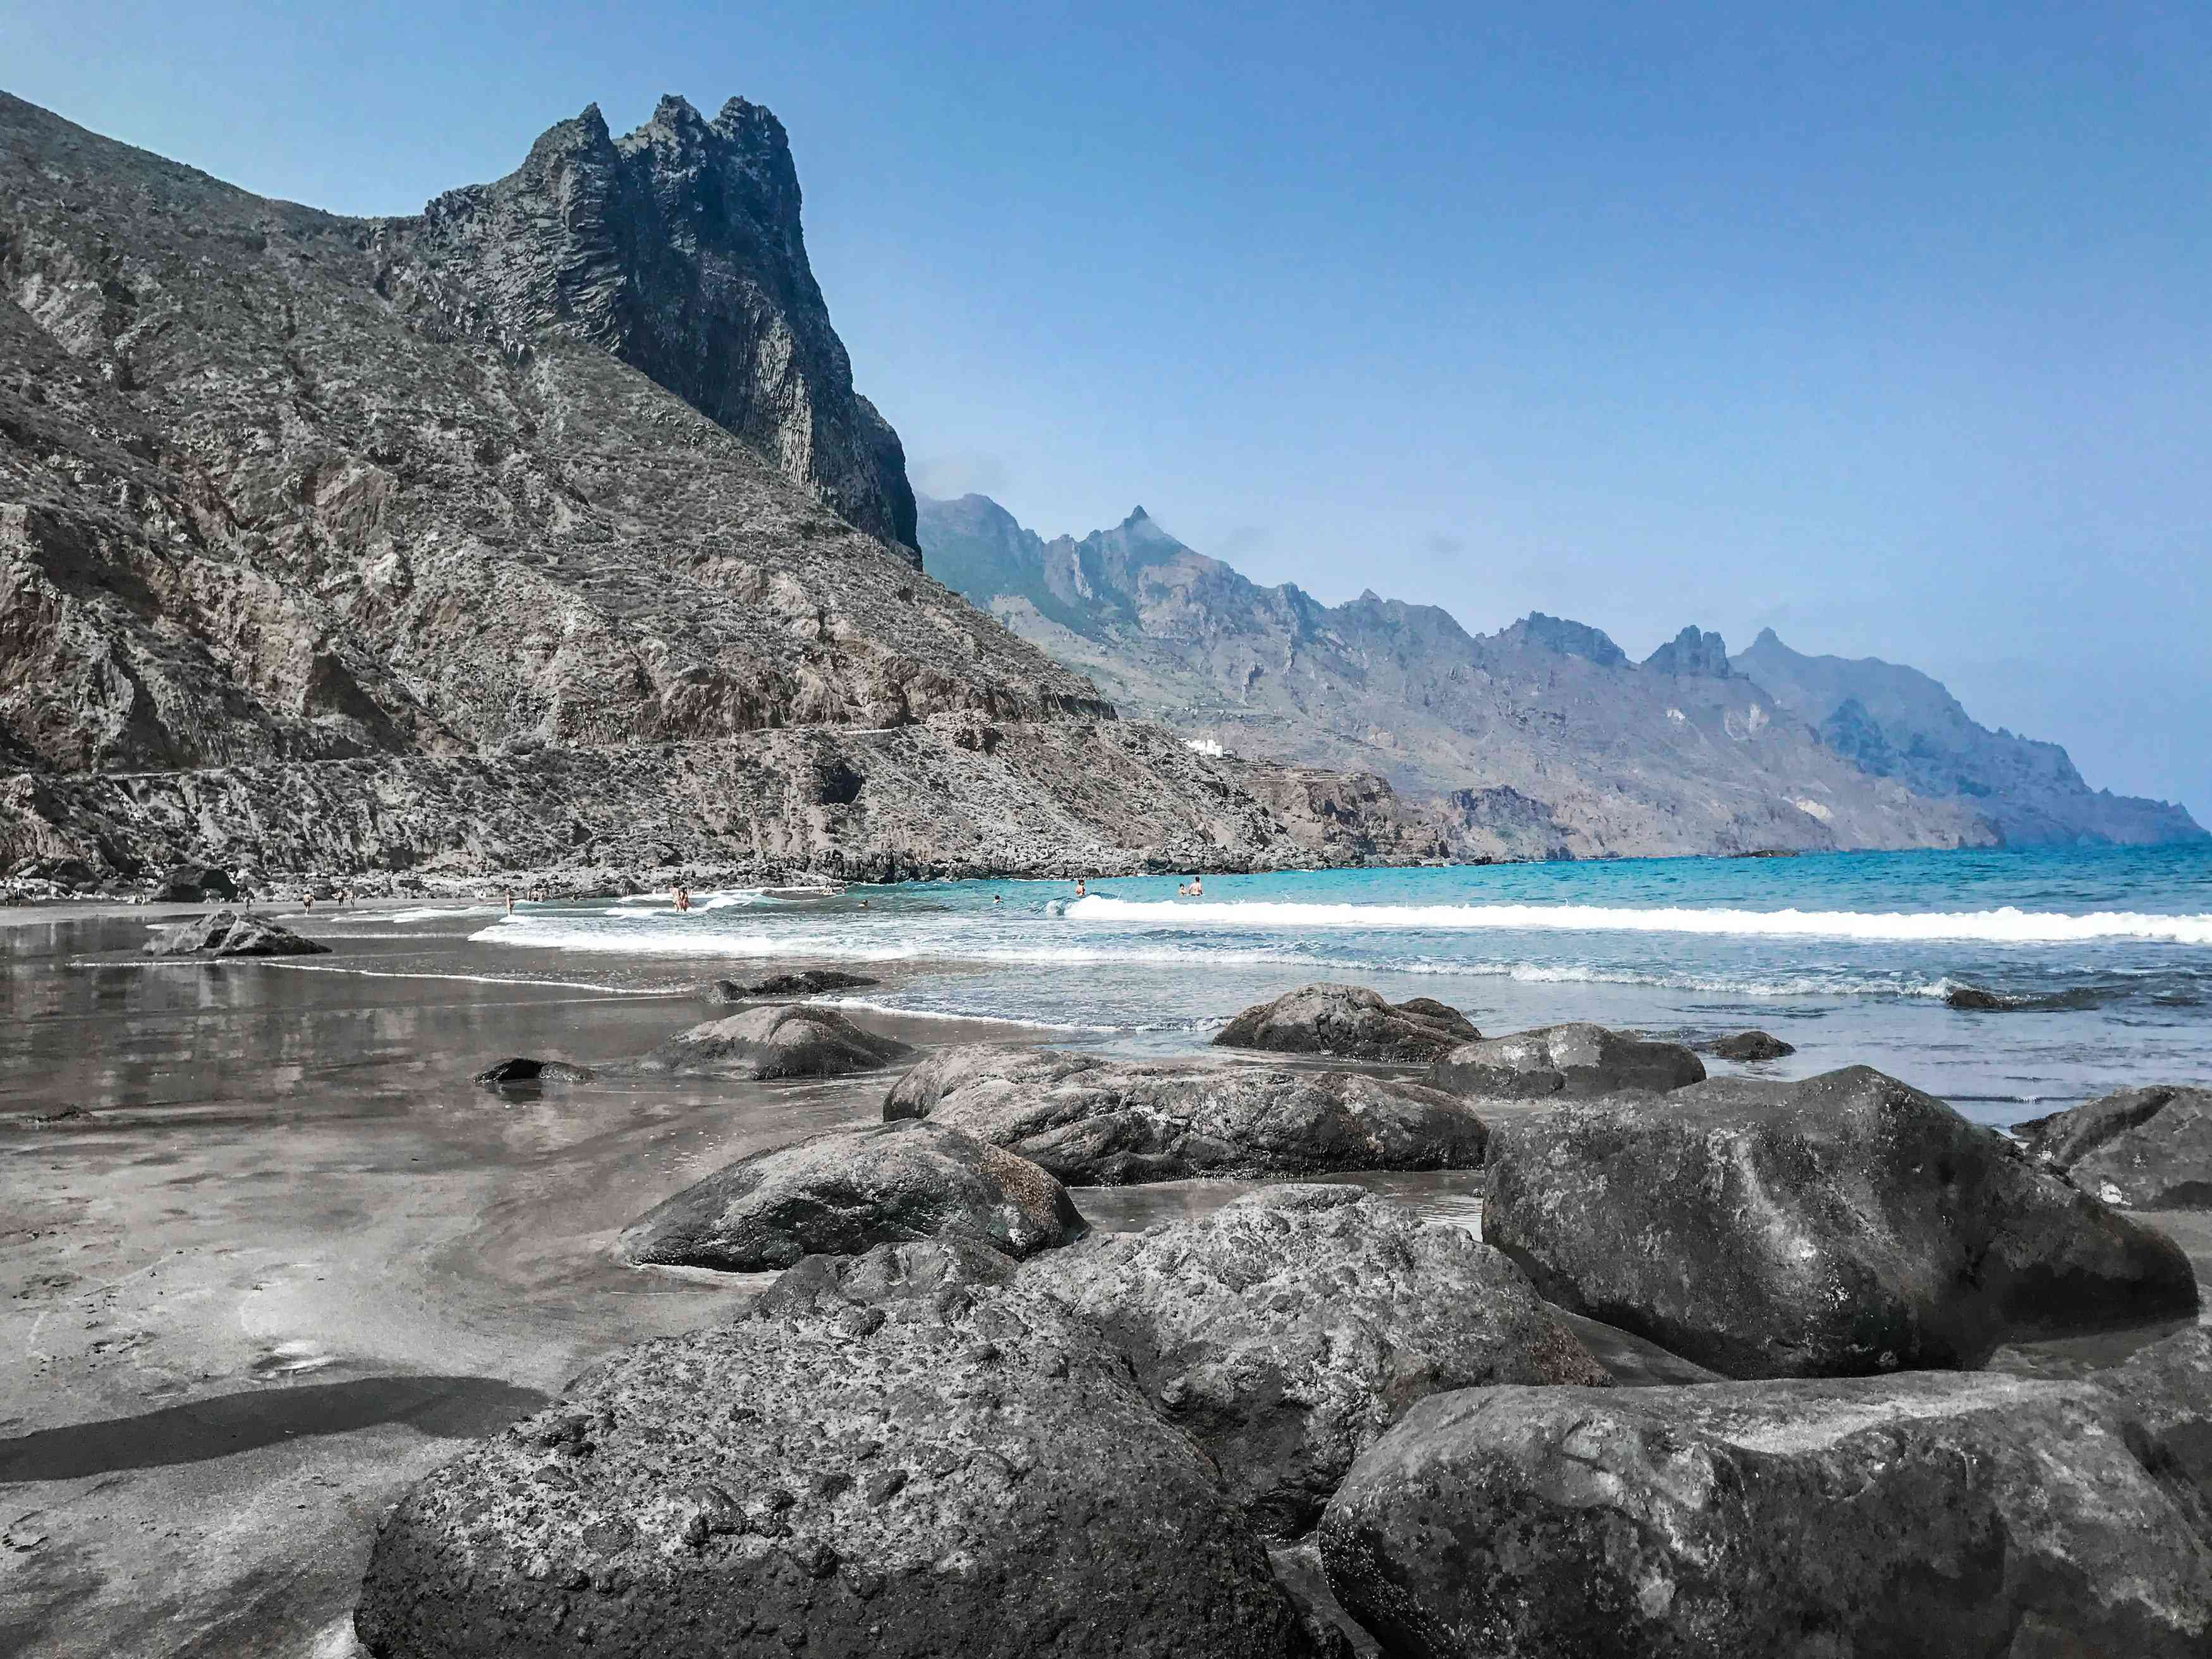 Volcanic mountains and black-sand beaches in Tenerife, Spain